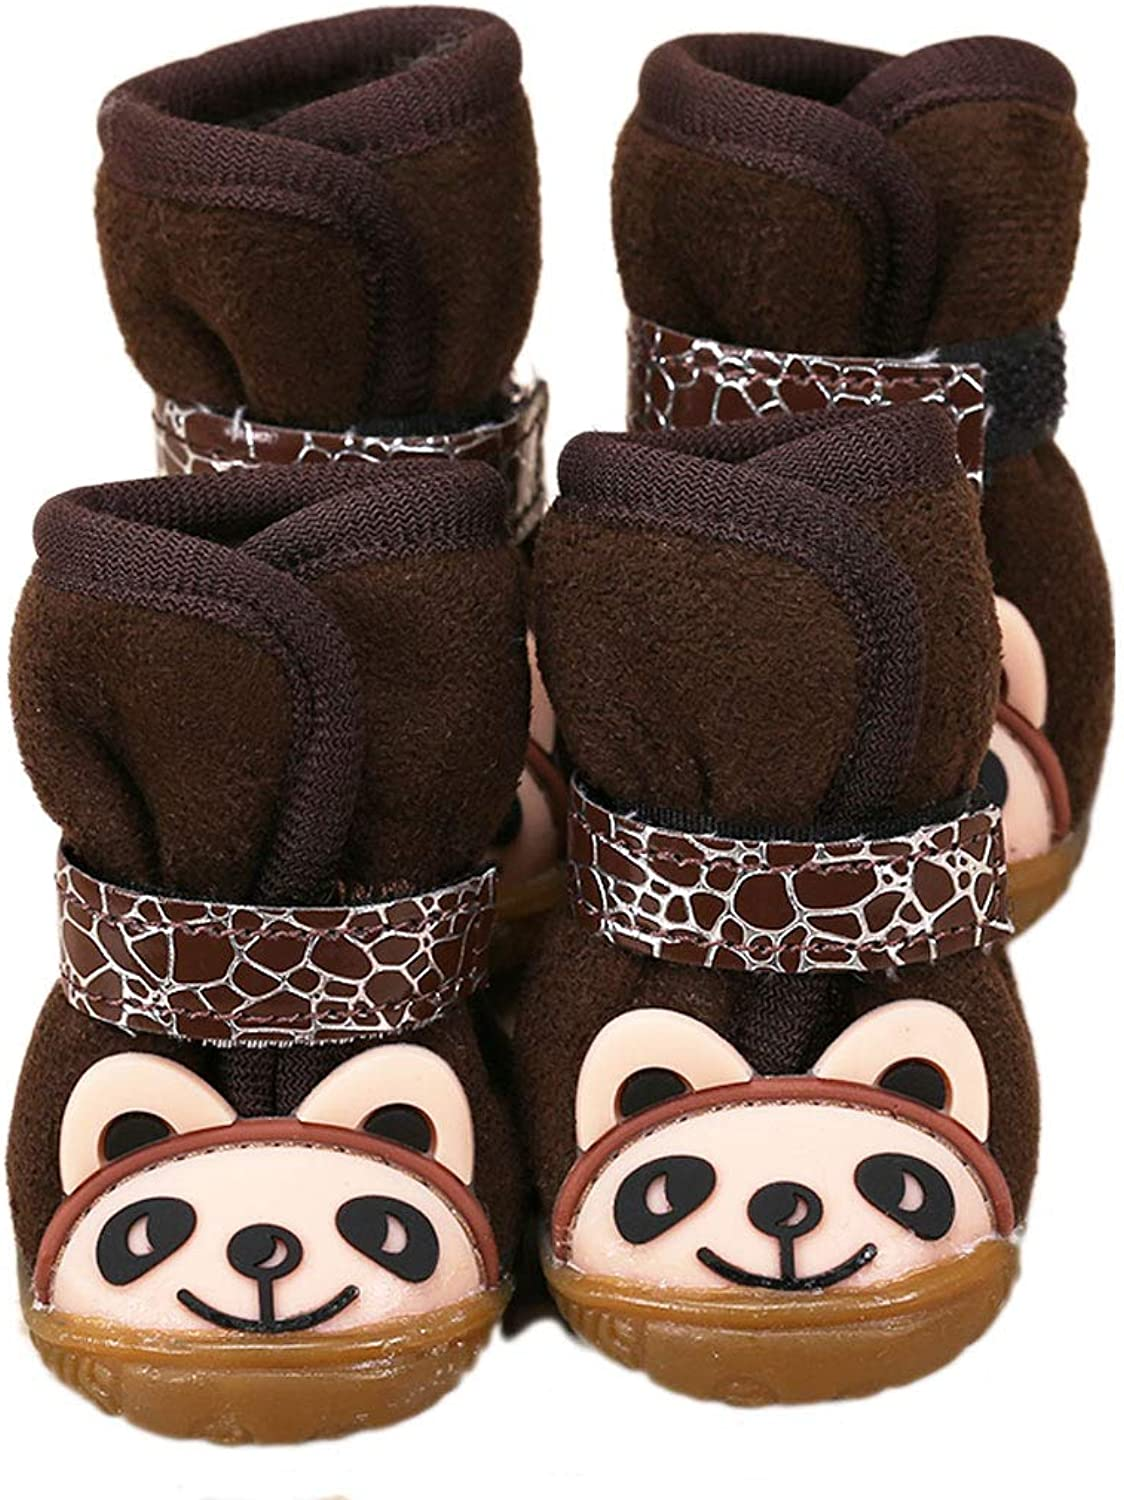 Puppy shoes Autumn and Winter shoes Teddy shoes Snow Boots Pets Than Bear Pet Dog shoes Cat shoes (color   Brown, Size   4)